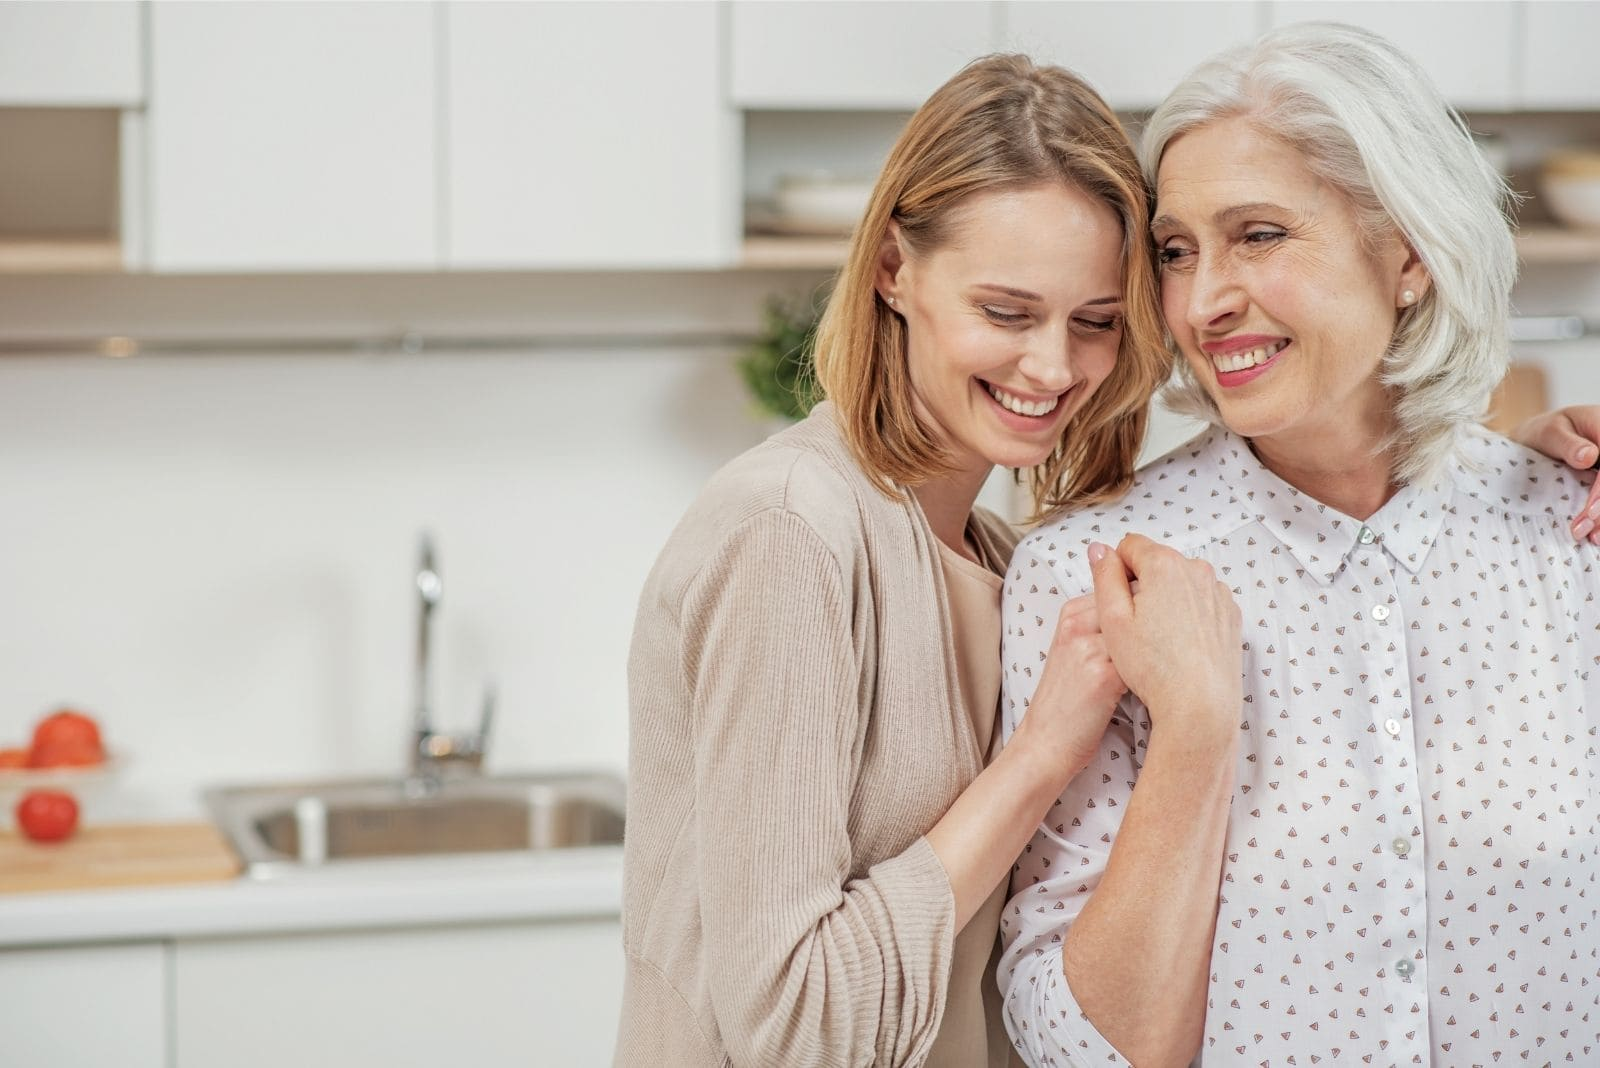 young woman cherished mature mother hugging her while both standing in the kitchen